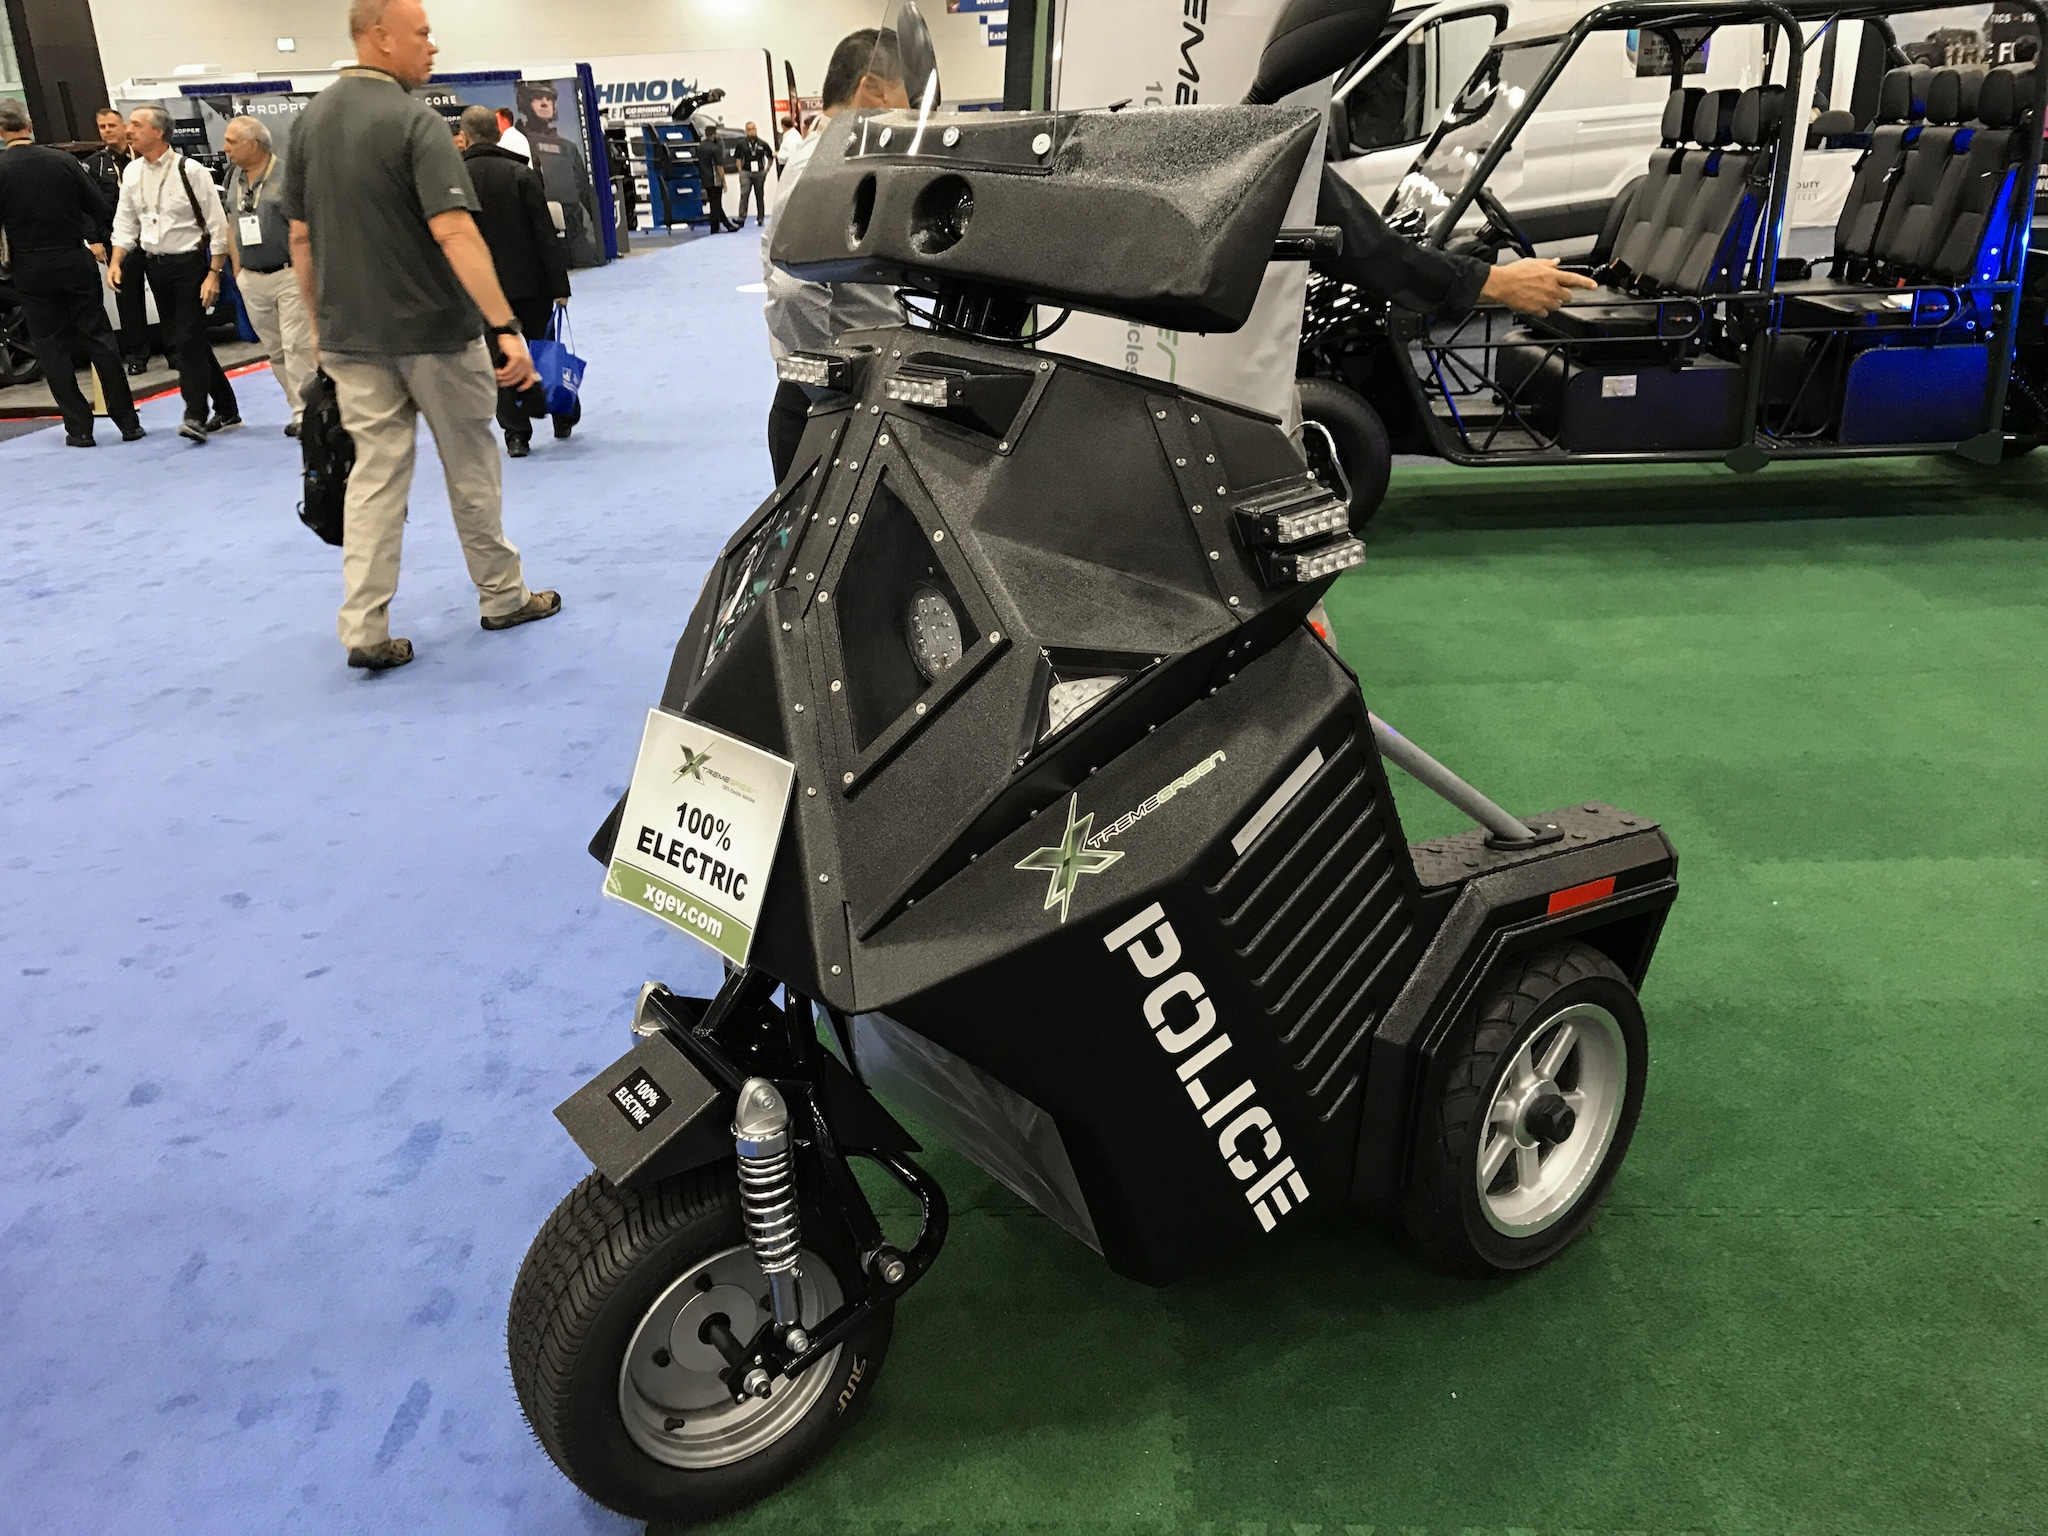 An Xtreme Green vehicle on display An Ekin smart surveillance demo set up during the National Association of Police Chiefs annual convention in San Diego Oct. 15-18, 2015. (Photo: Jared Morgan / Guns.com)